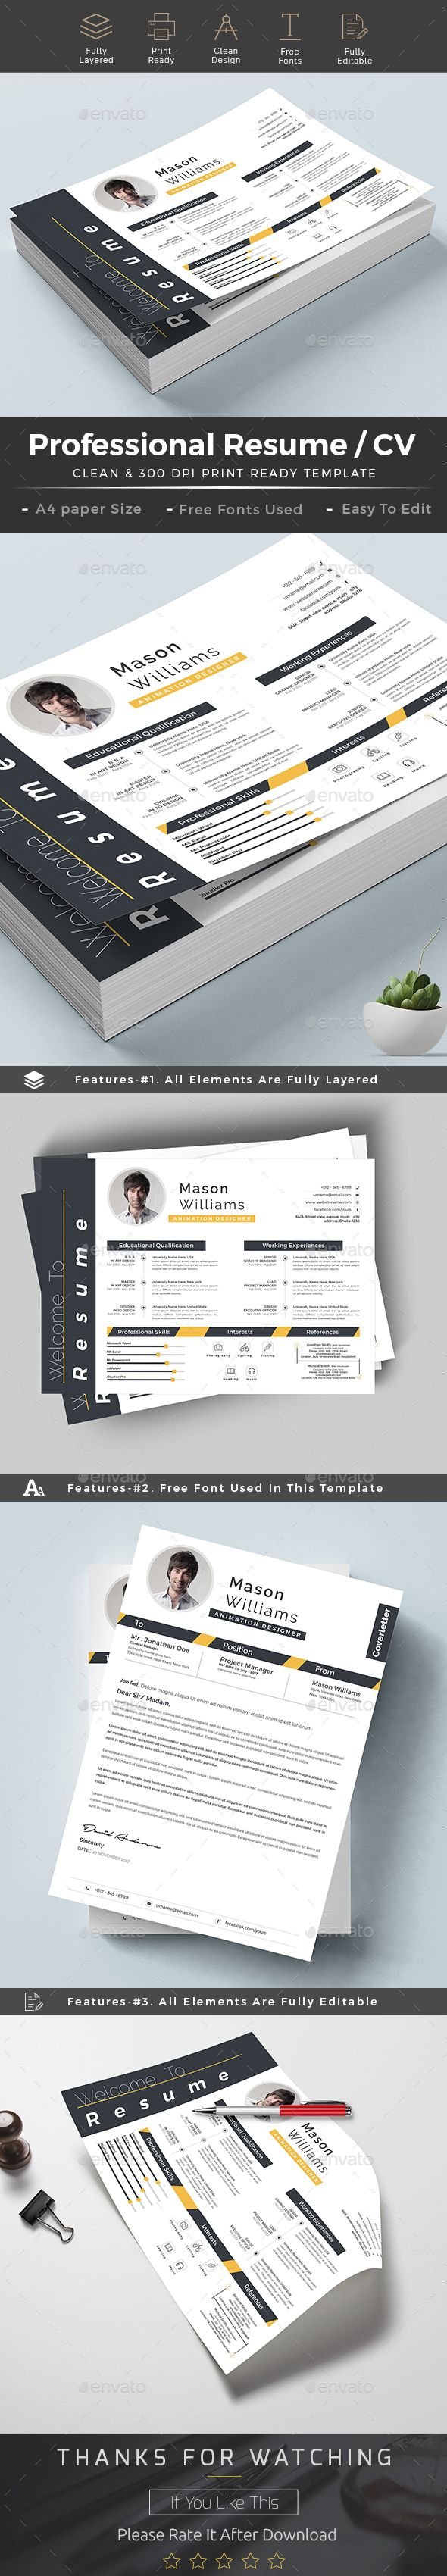 Best 25 Resume Design Template Ideas On Pinterest Resume Design